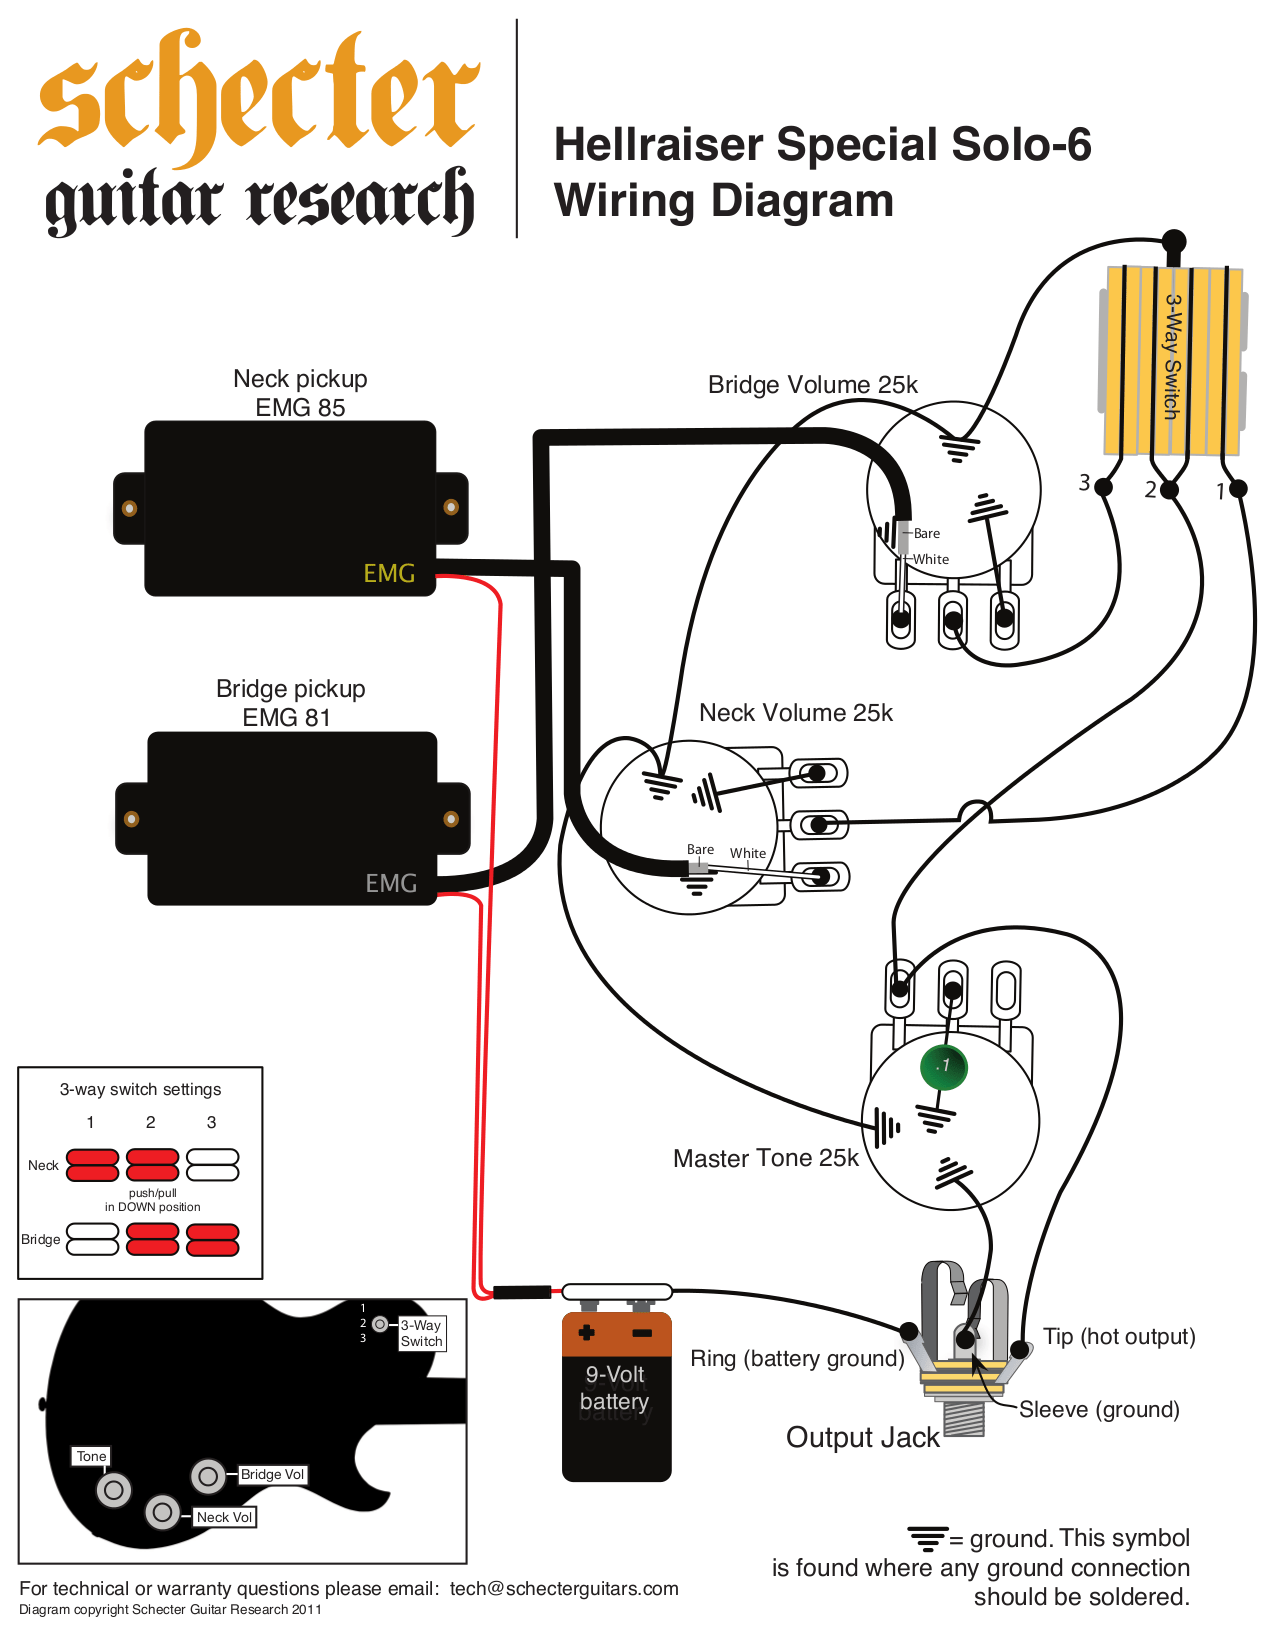 Emg 81 And 85 Wiring Diagram : Emg wiring diagram les paul and white